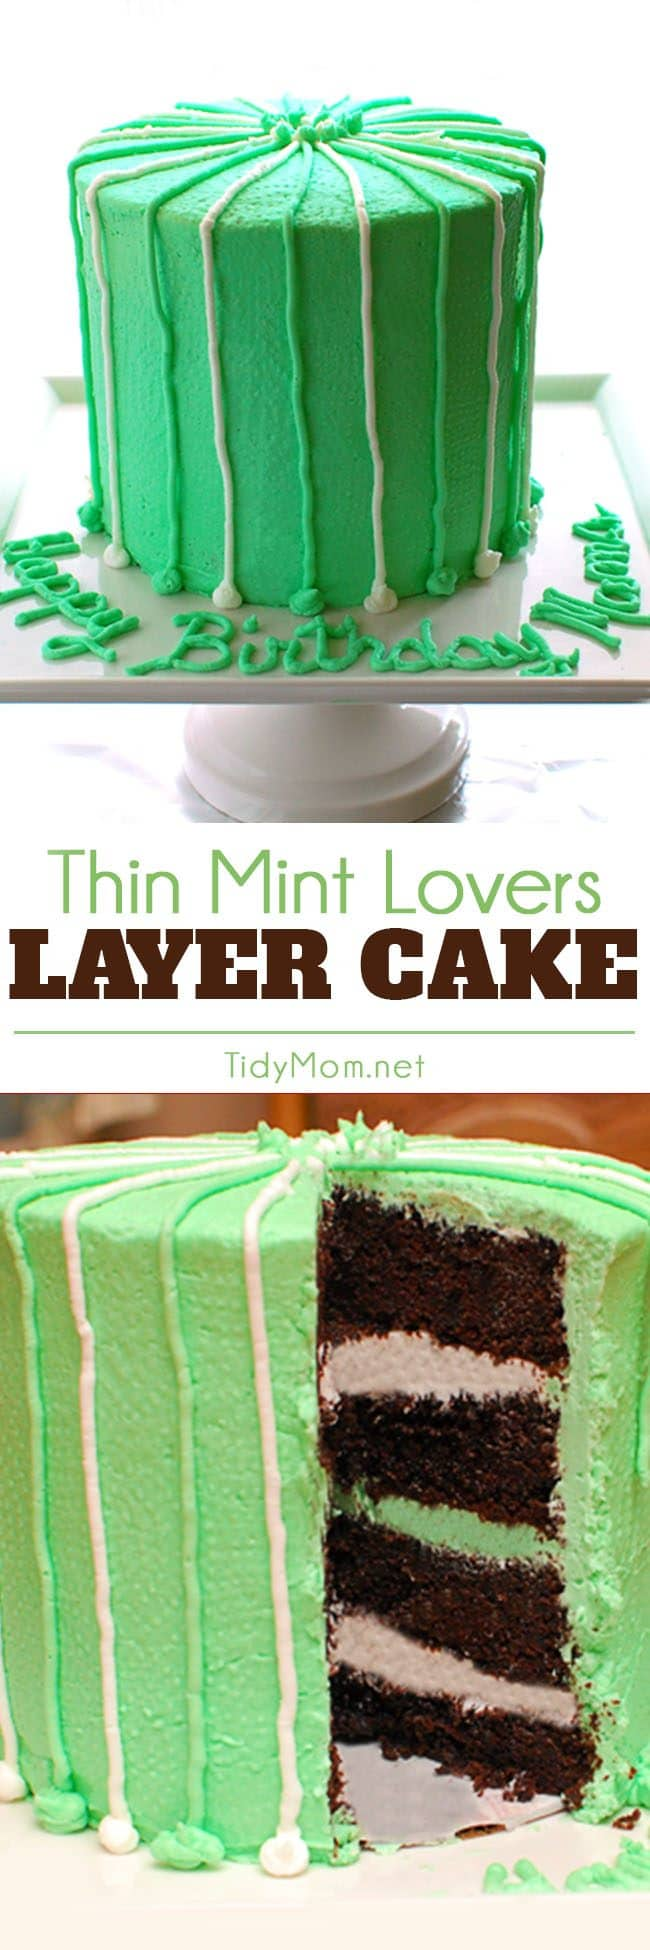 This easy and delicious Thin Mint Cake is perfect for the chocolate mint lovers! Click the image to get the recipe at TidyMom.net and learn about the unexpected ingredient that makes it extra moist!